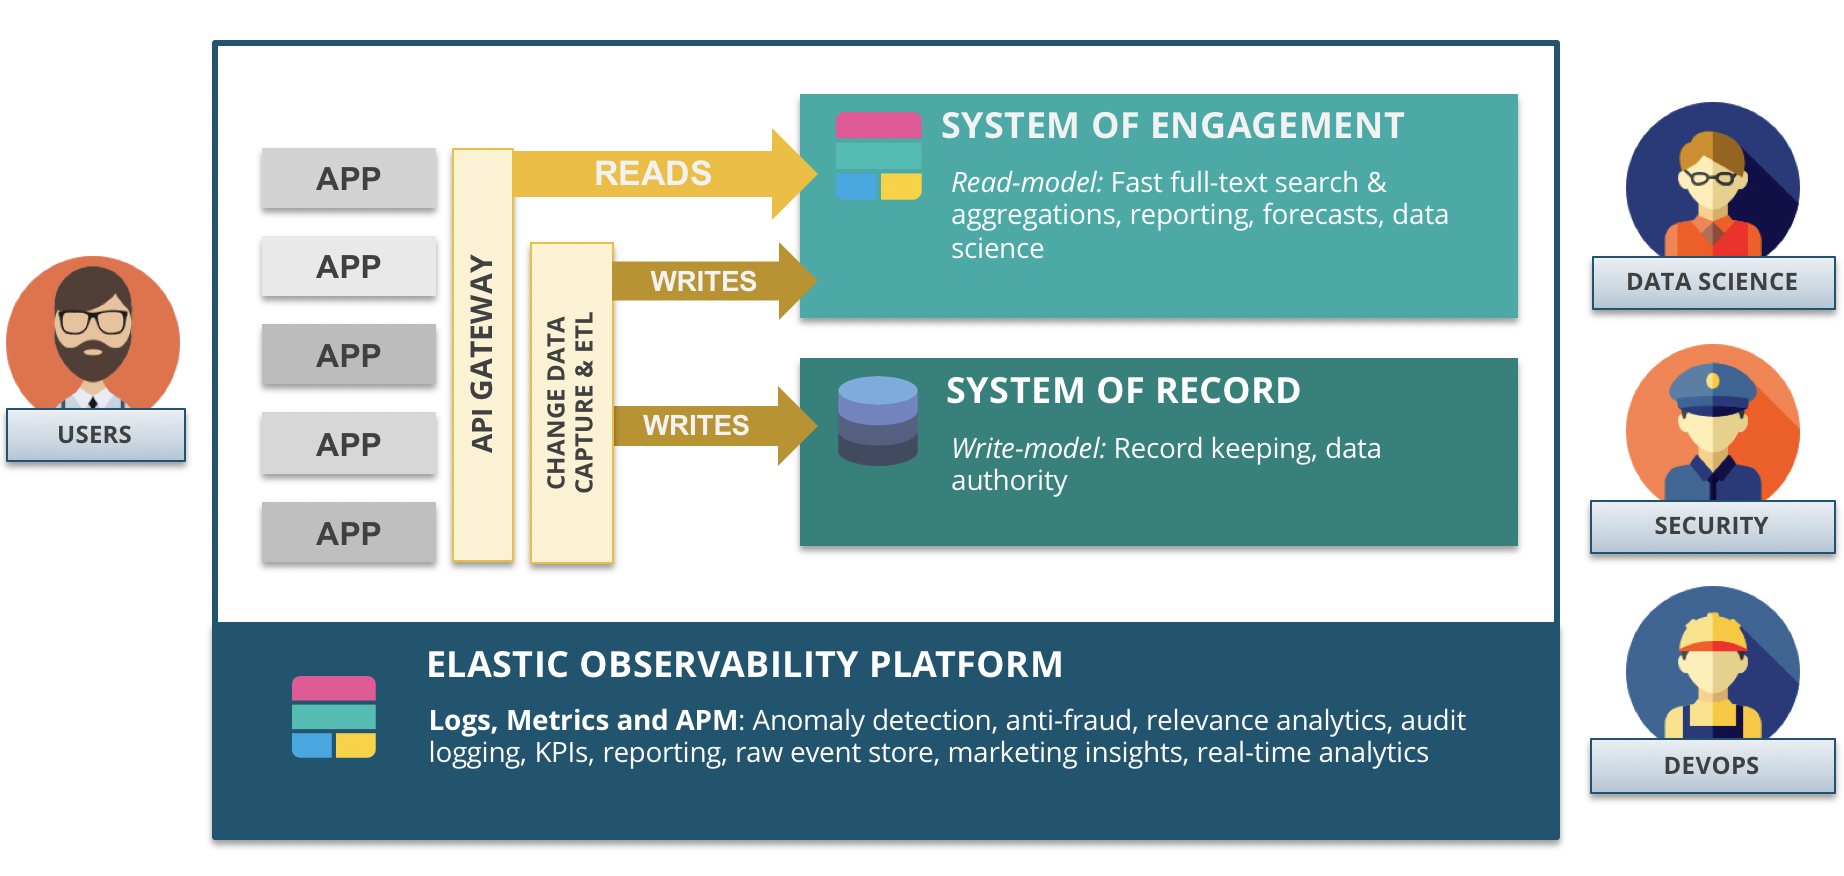 Elasticsearch System of Engagement architecture